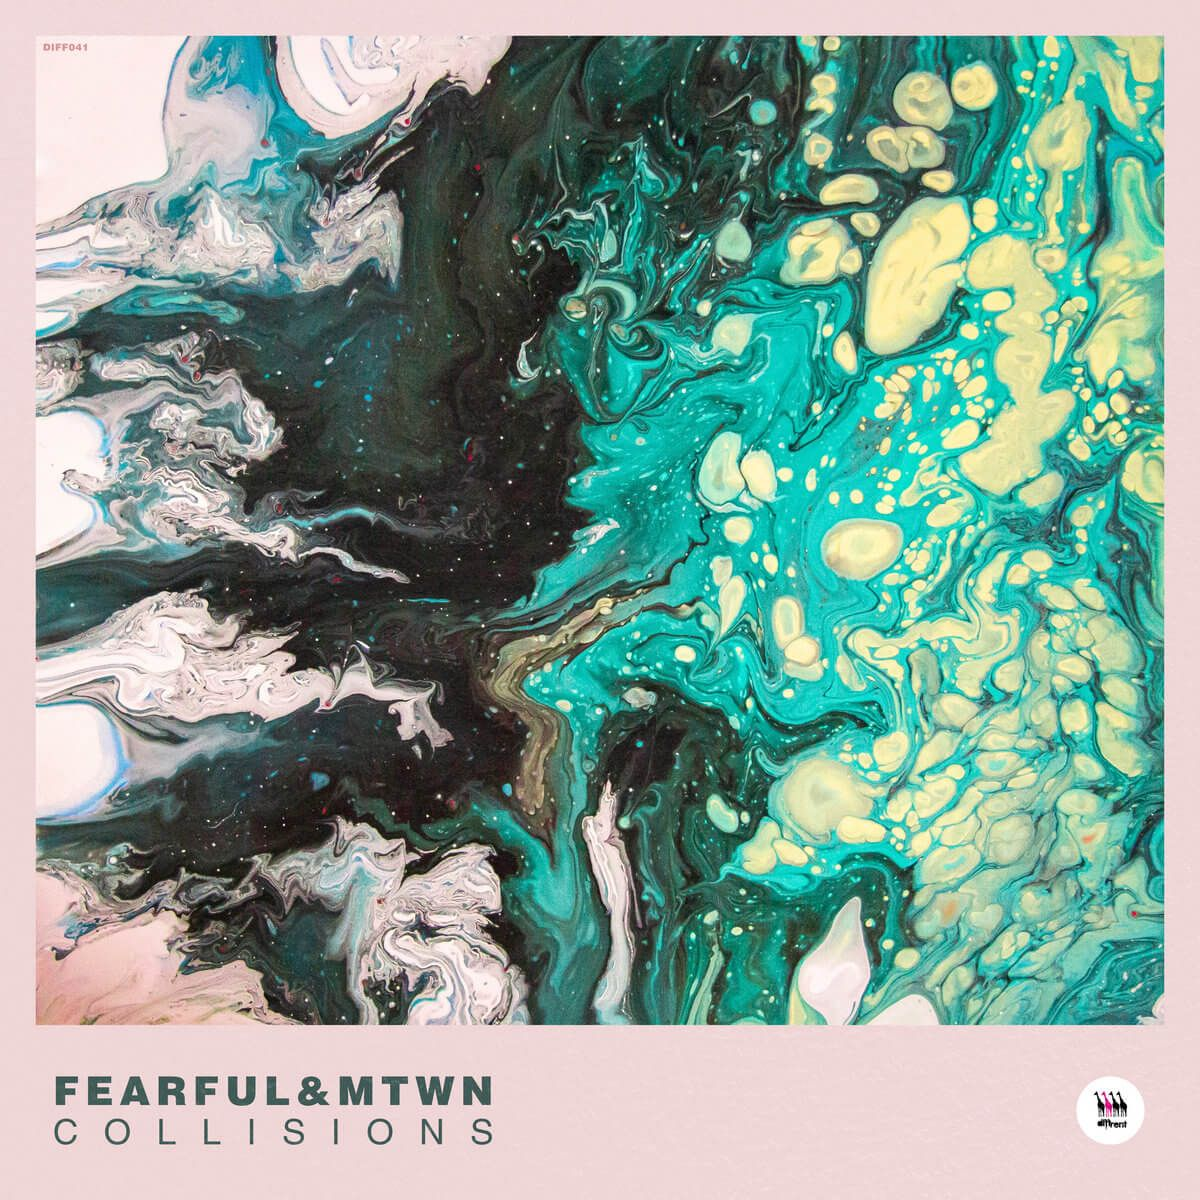 Fearful & Mtwn's Collisions EP on Diffrent Music